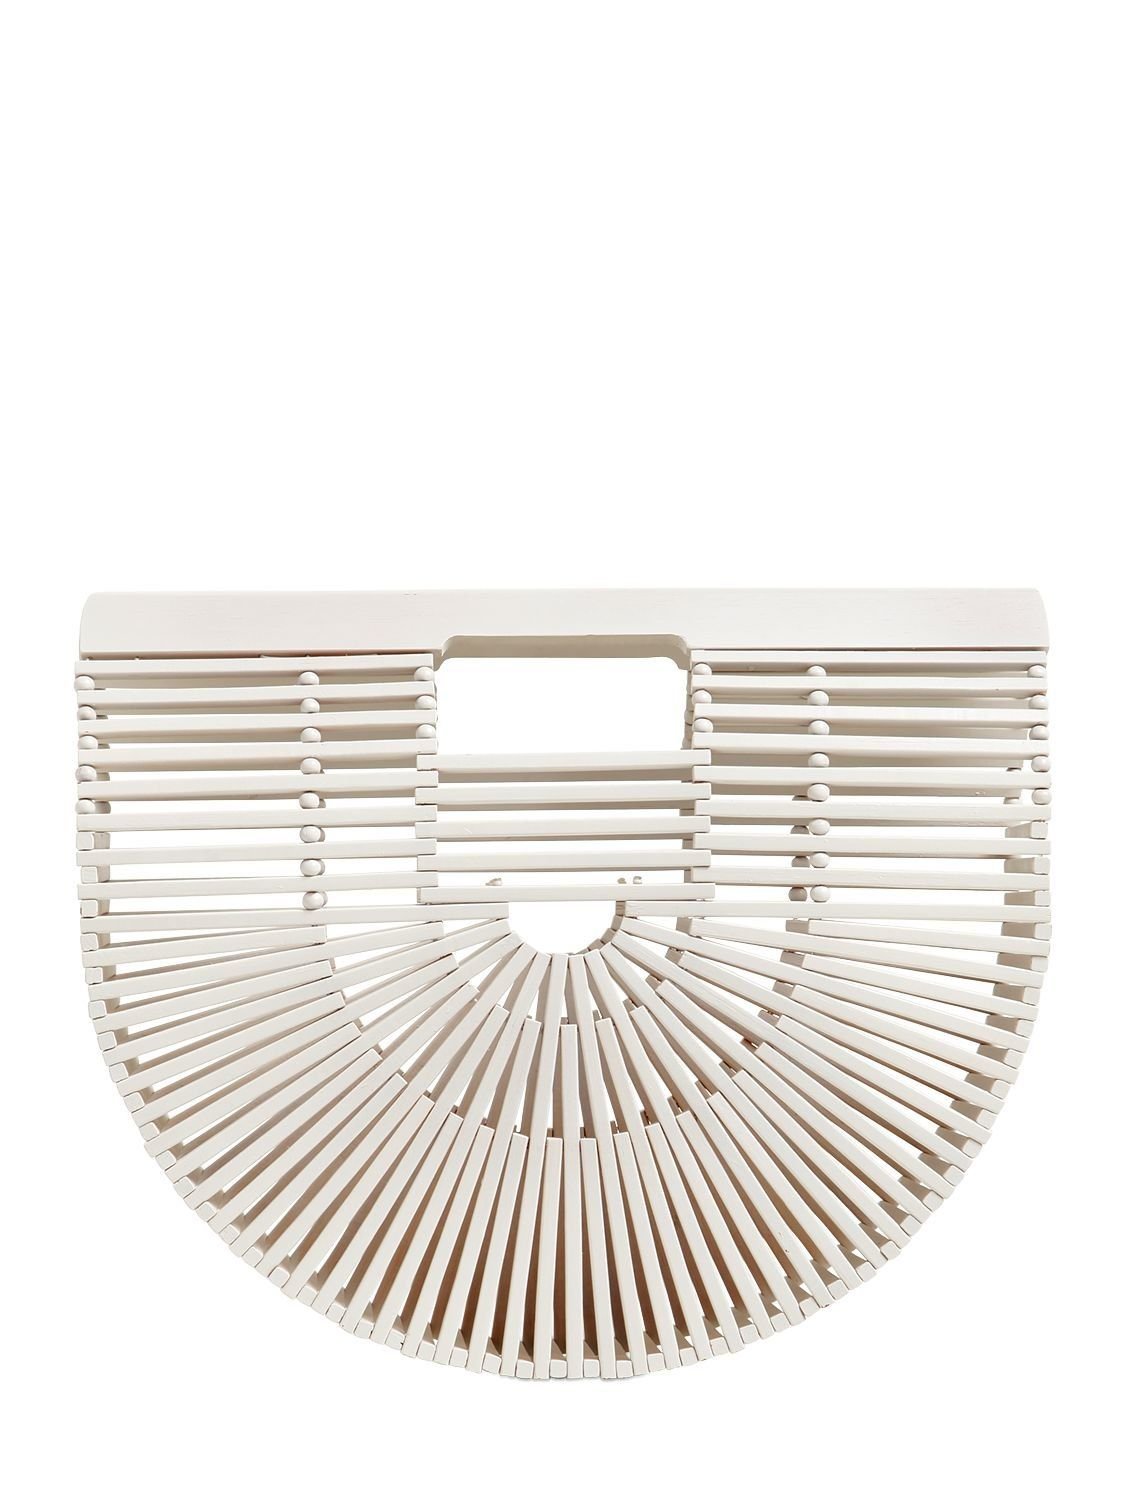 CULT GAIA SMALL GAIA'S ARK WHITE BAMBOO BAG. #cultgaia #bags # # #smallgaia'sarkbag